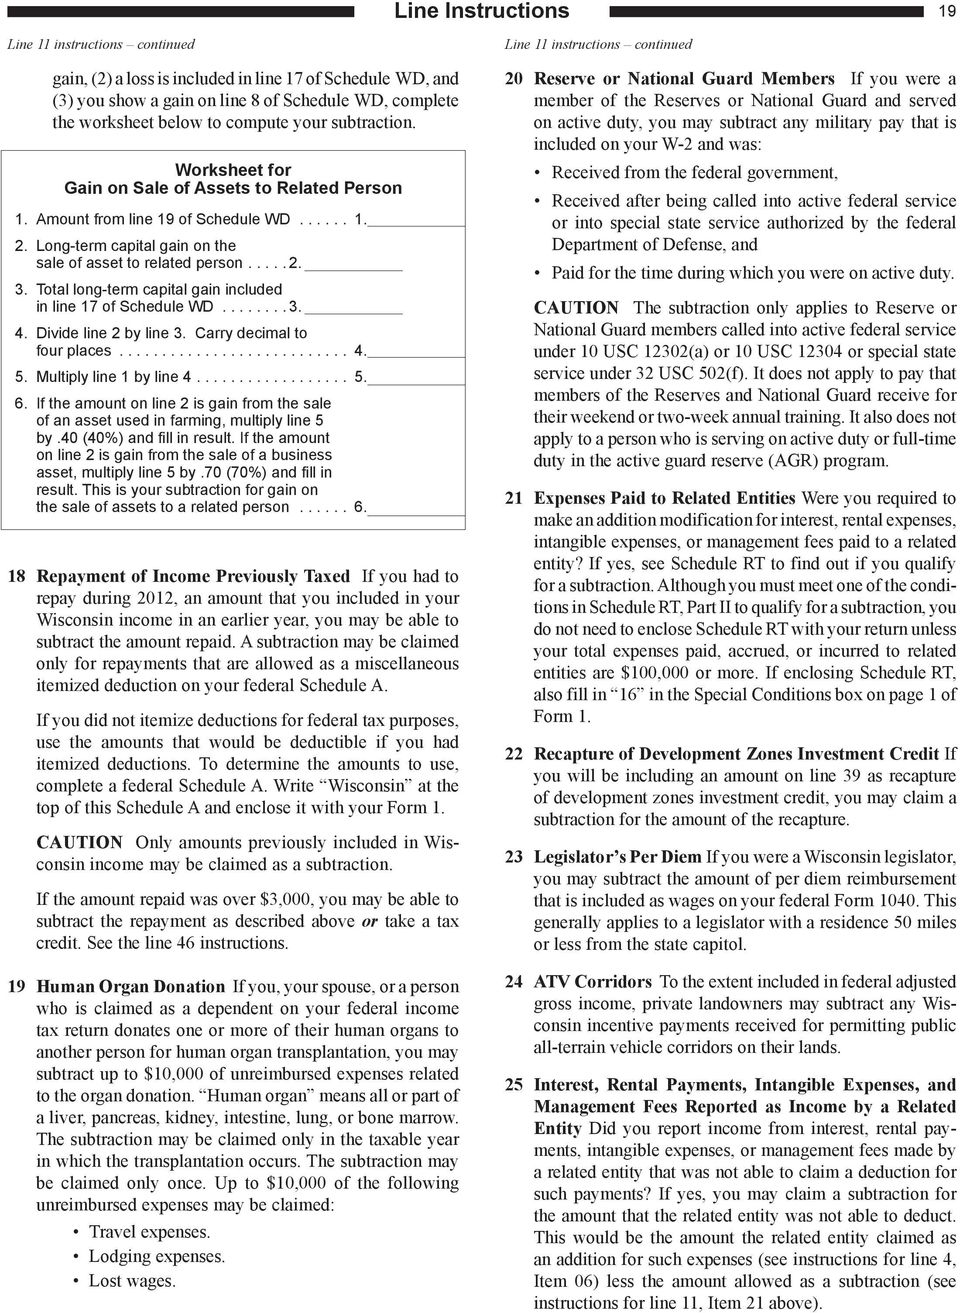 1 wisconsin income tax pdf.